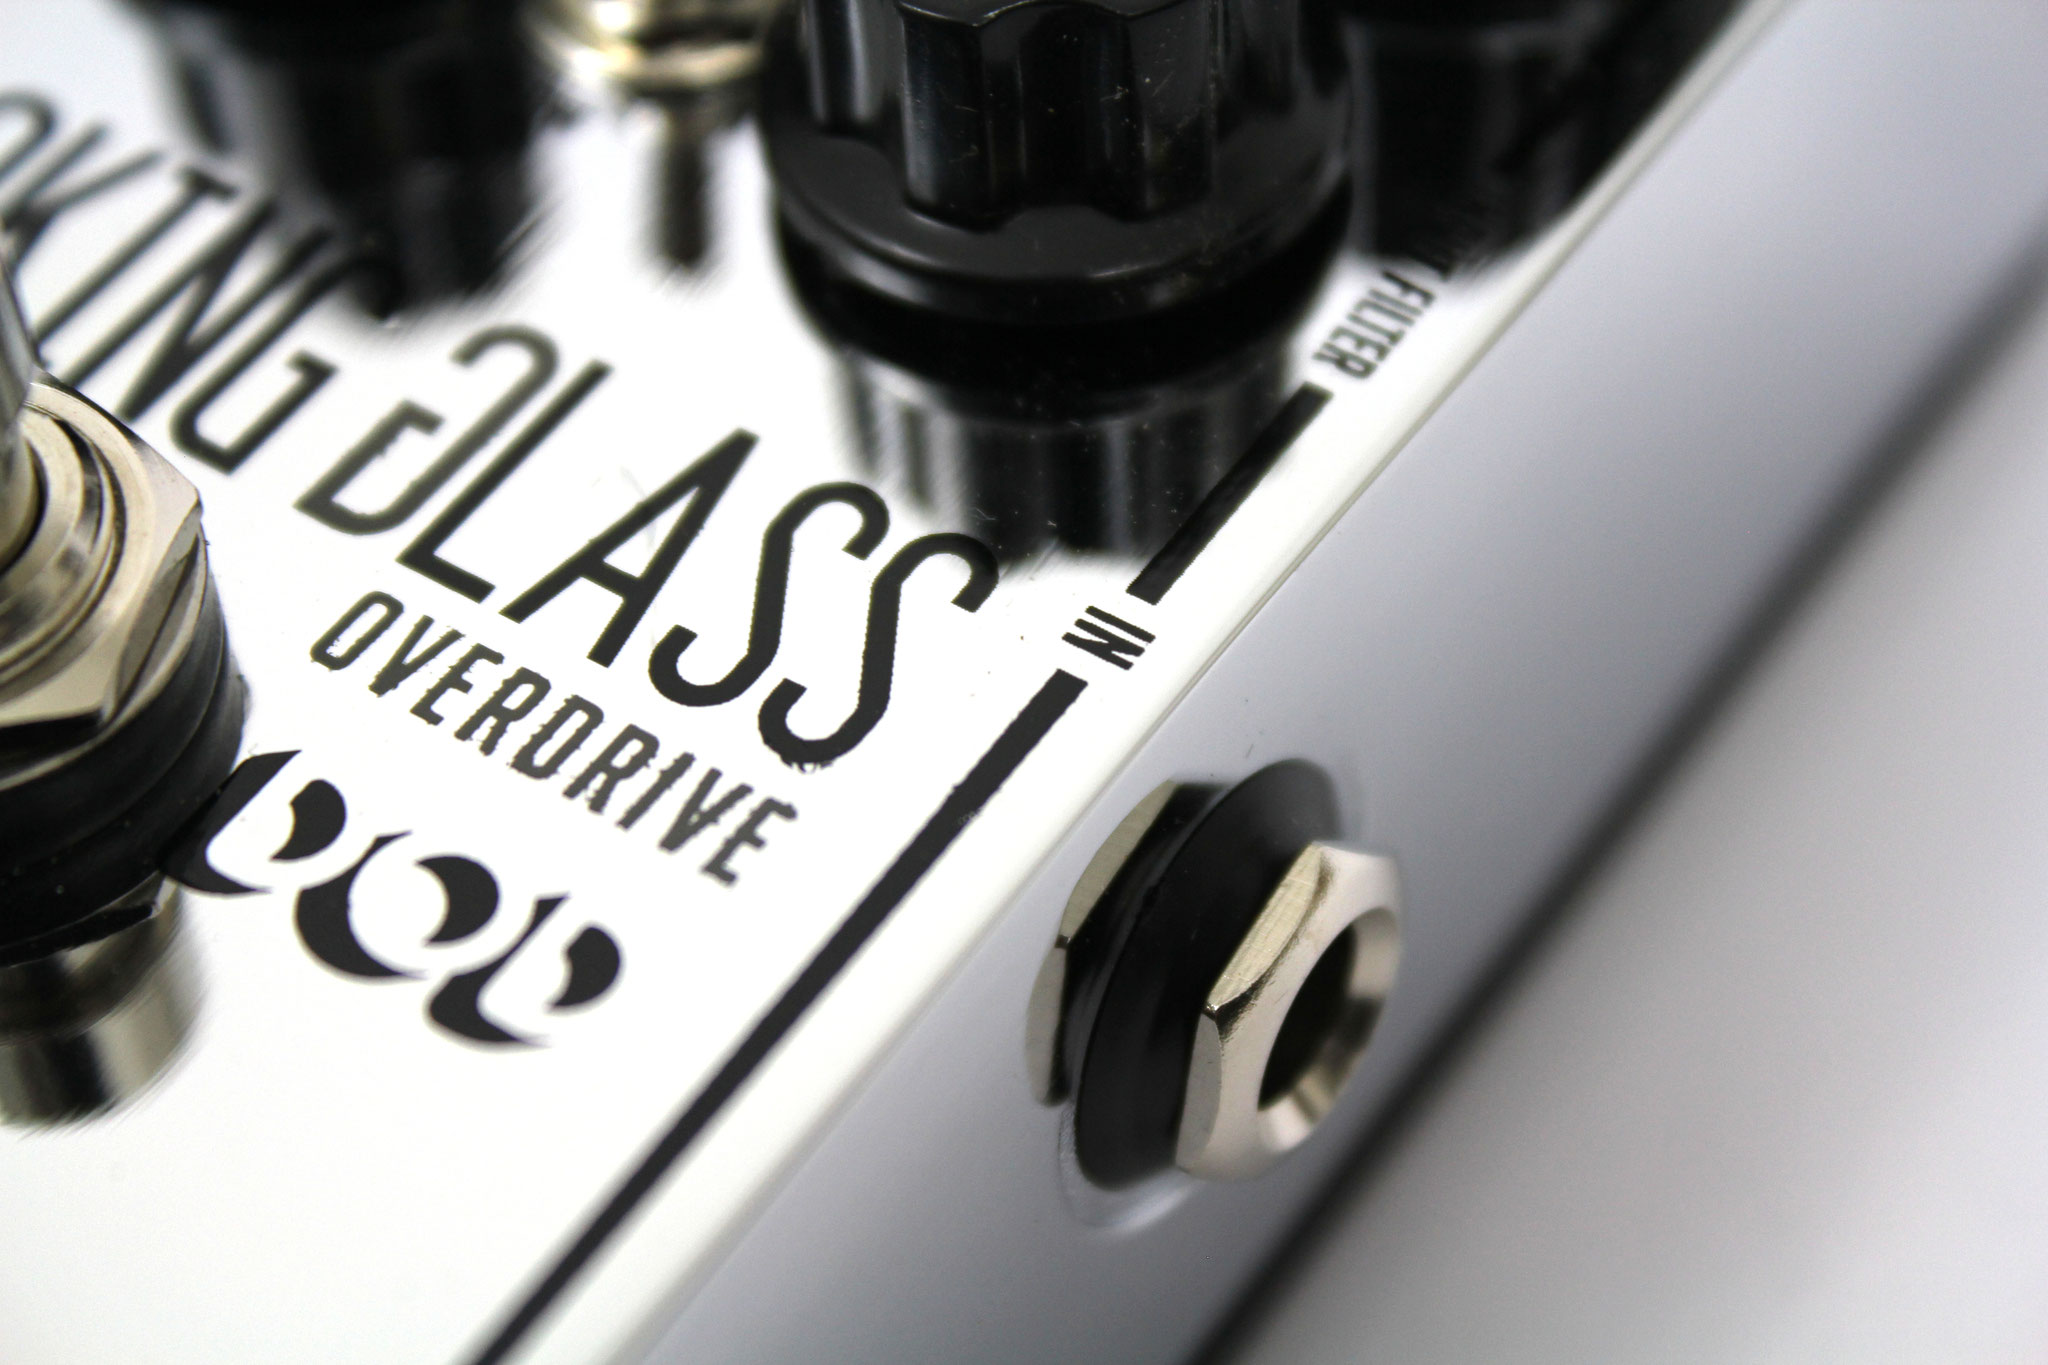 Digitech DOD Looking Glass Overdrive Pedal